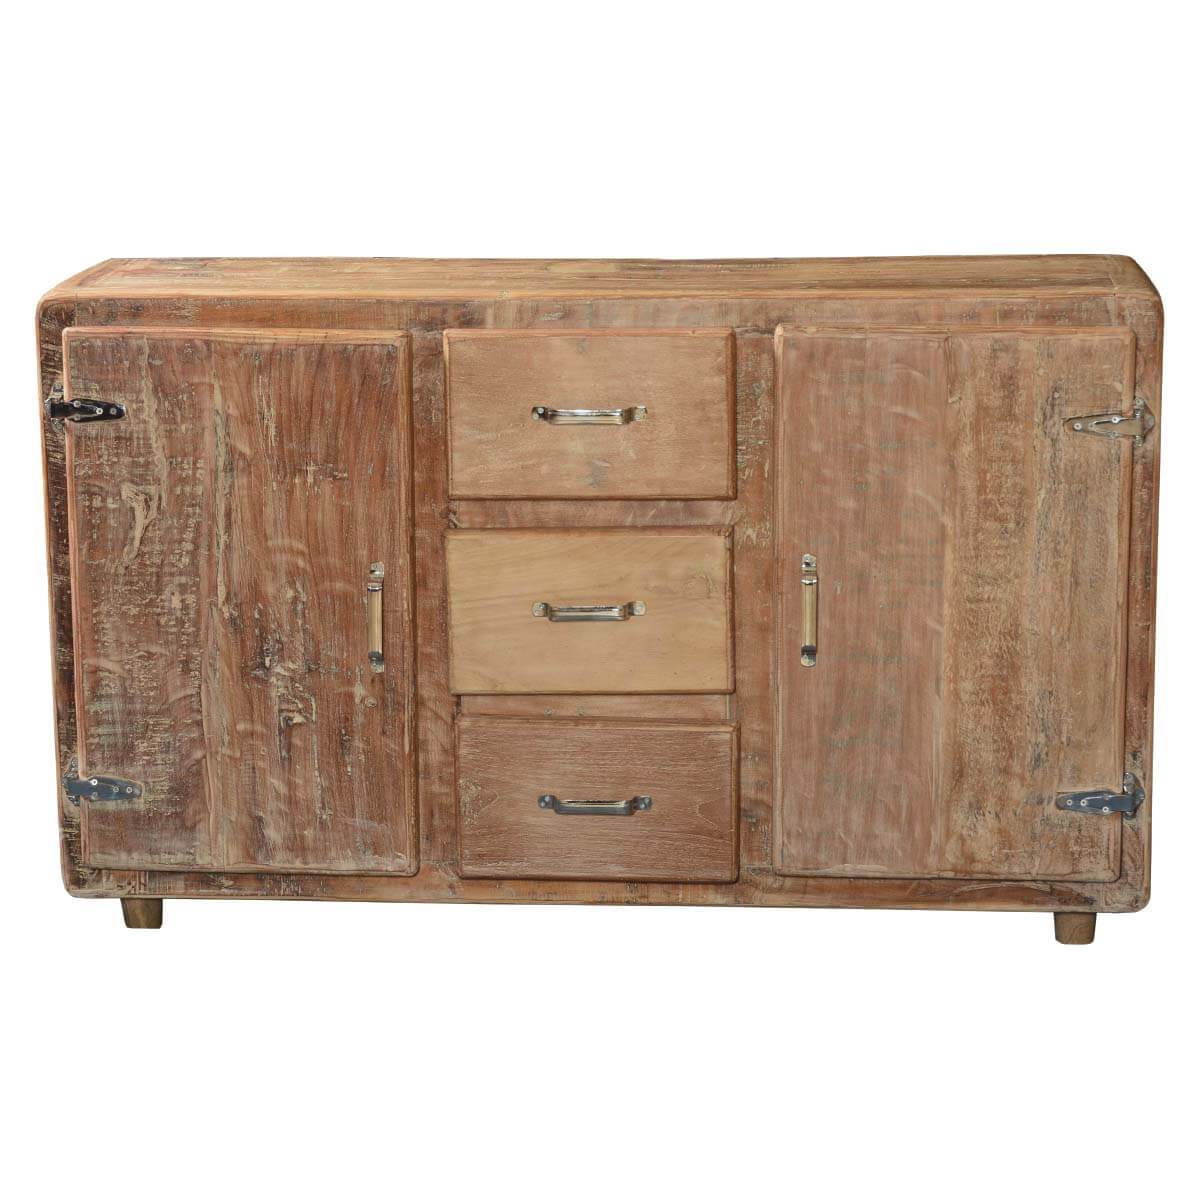 Newdale Rounded Corners Reclaimed Wood 3 Drawer Rustic